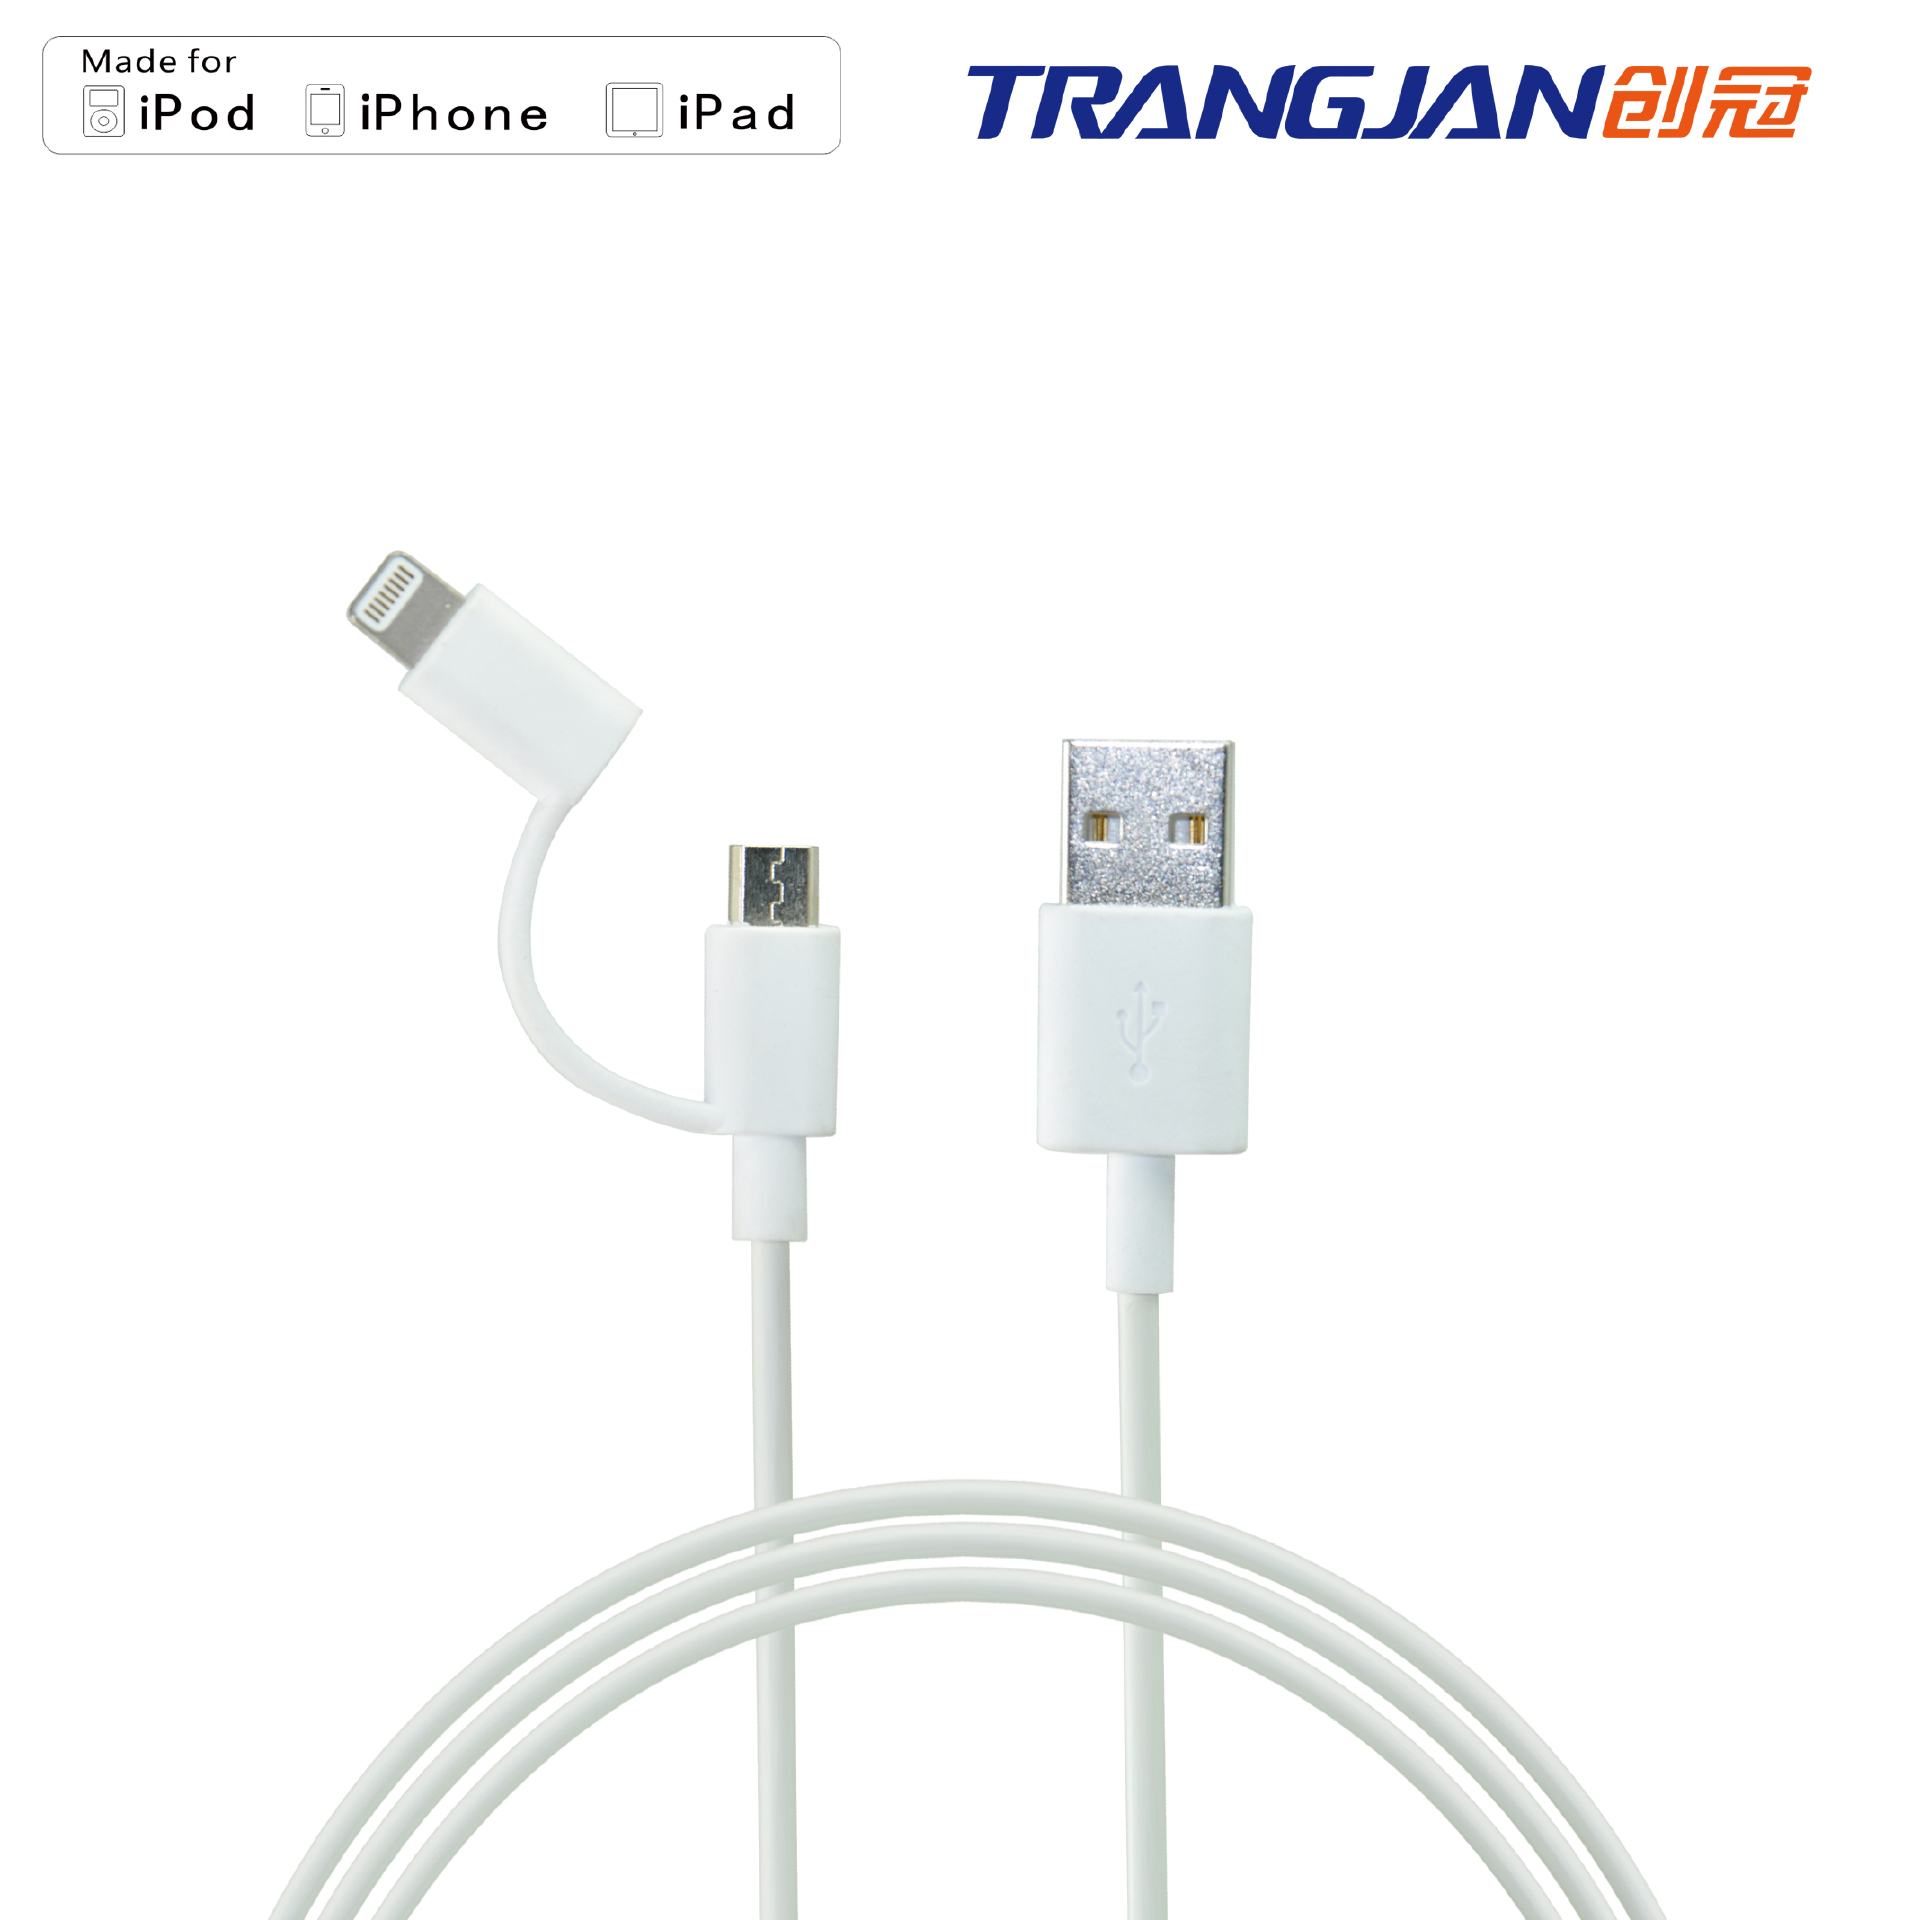 2 in 1 MFi Certified USB Data Cable